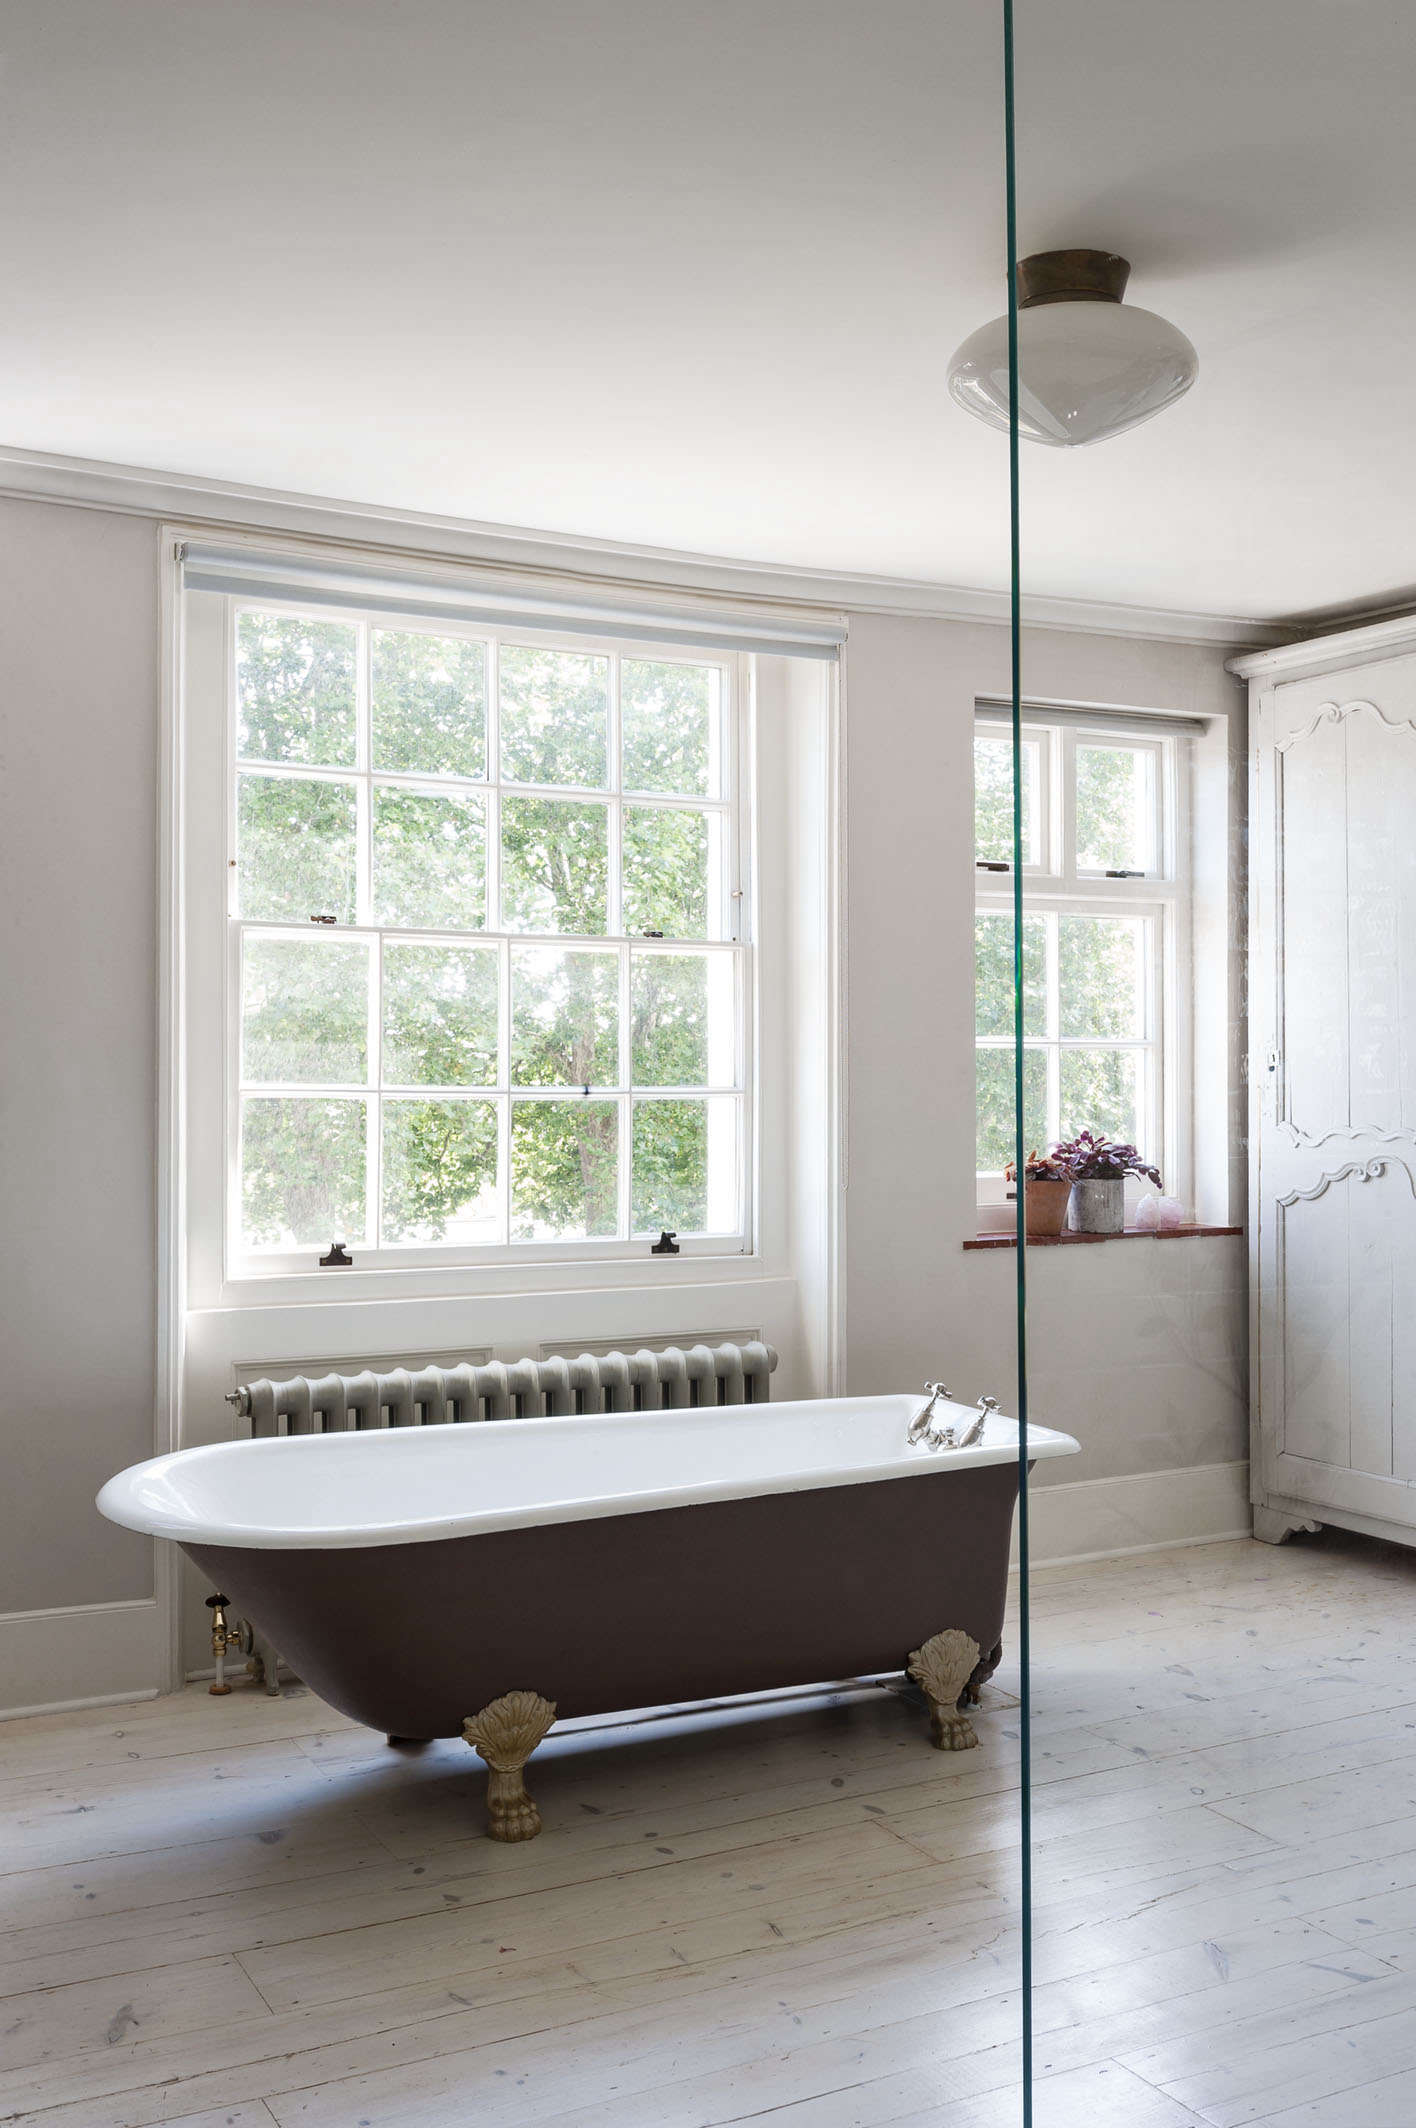 A claw-foot tub featured in Bathroom of the Week: A Romantic London Bath Made from Vintage Parts. Photograph by Matthew Williams for Remodelista.